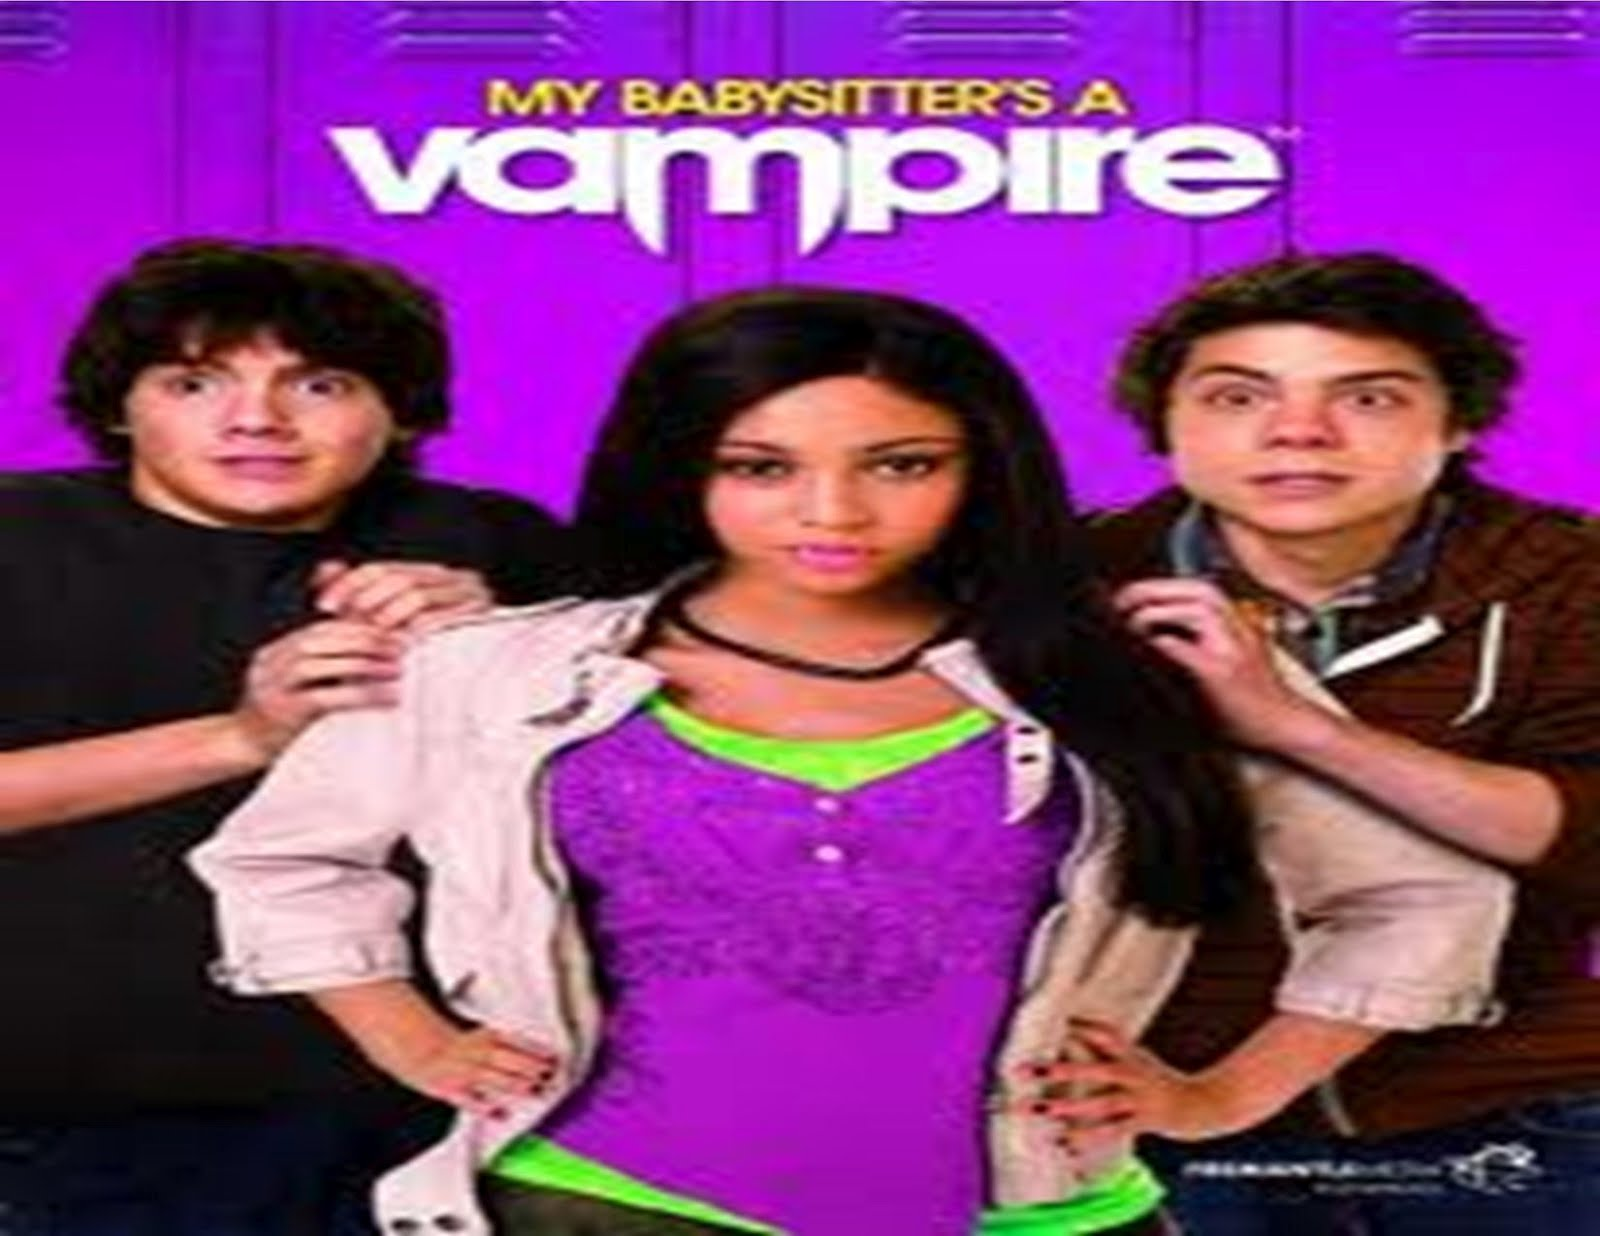 My Babysitter's a Vampire Season 2 Episode 3 (s02e03) Fanged and Furious